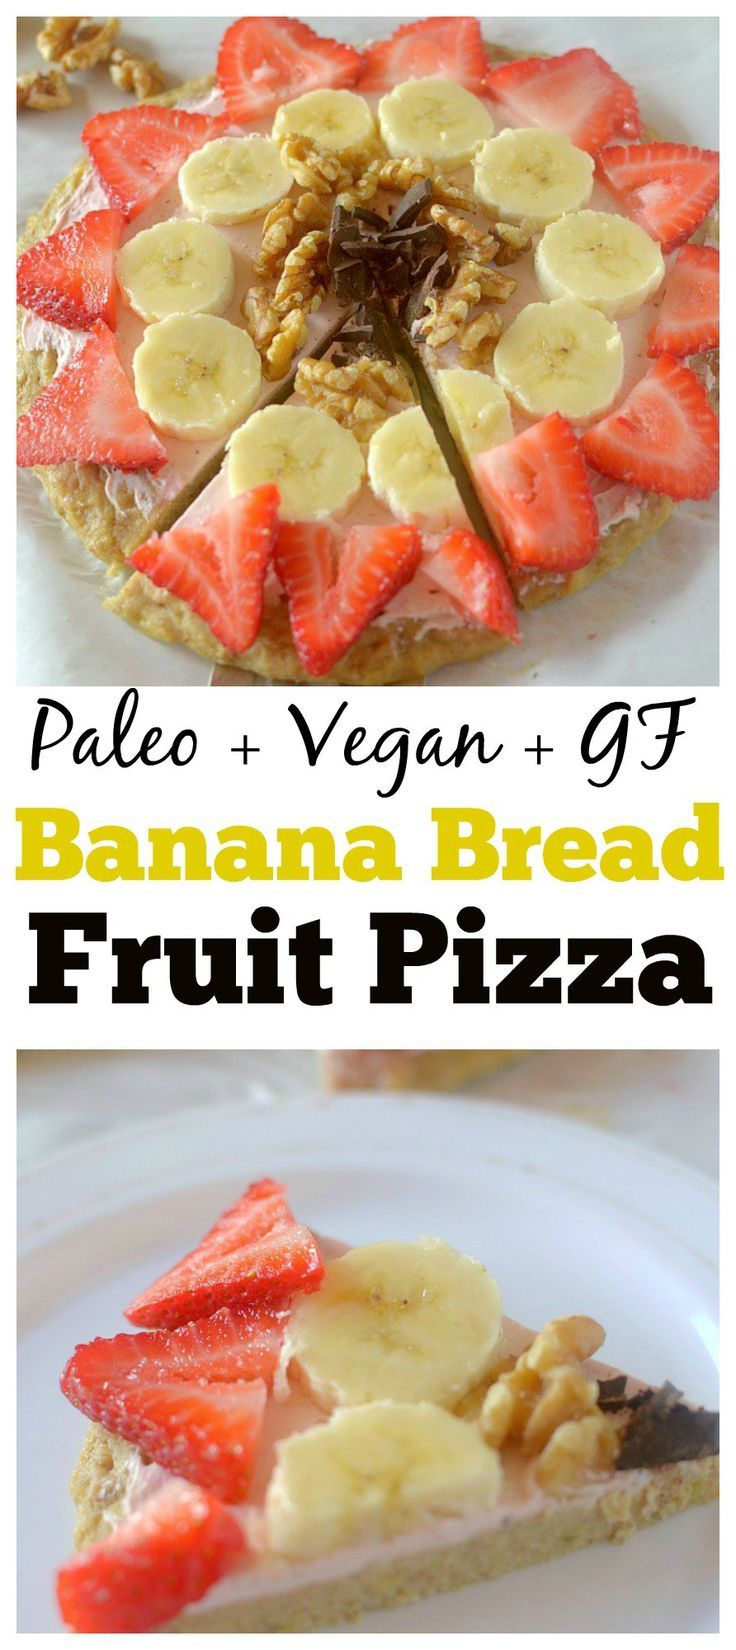 This Healthy Banana Bread Fruit Pizza is a delicious dessert, breakfast or snack! It has a banana bread-like crust and is topped with a strawberry cream cheese frosting, fruit, nuts and chocolate. It is completely gluten-free, paleo and has a vegan option